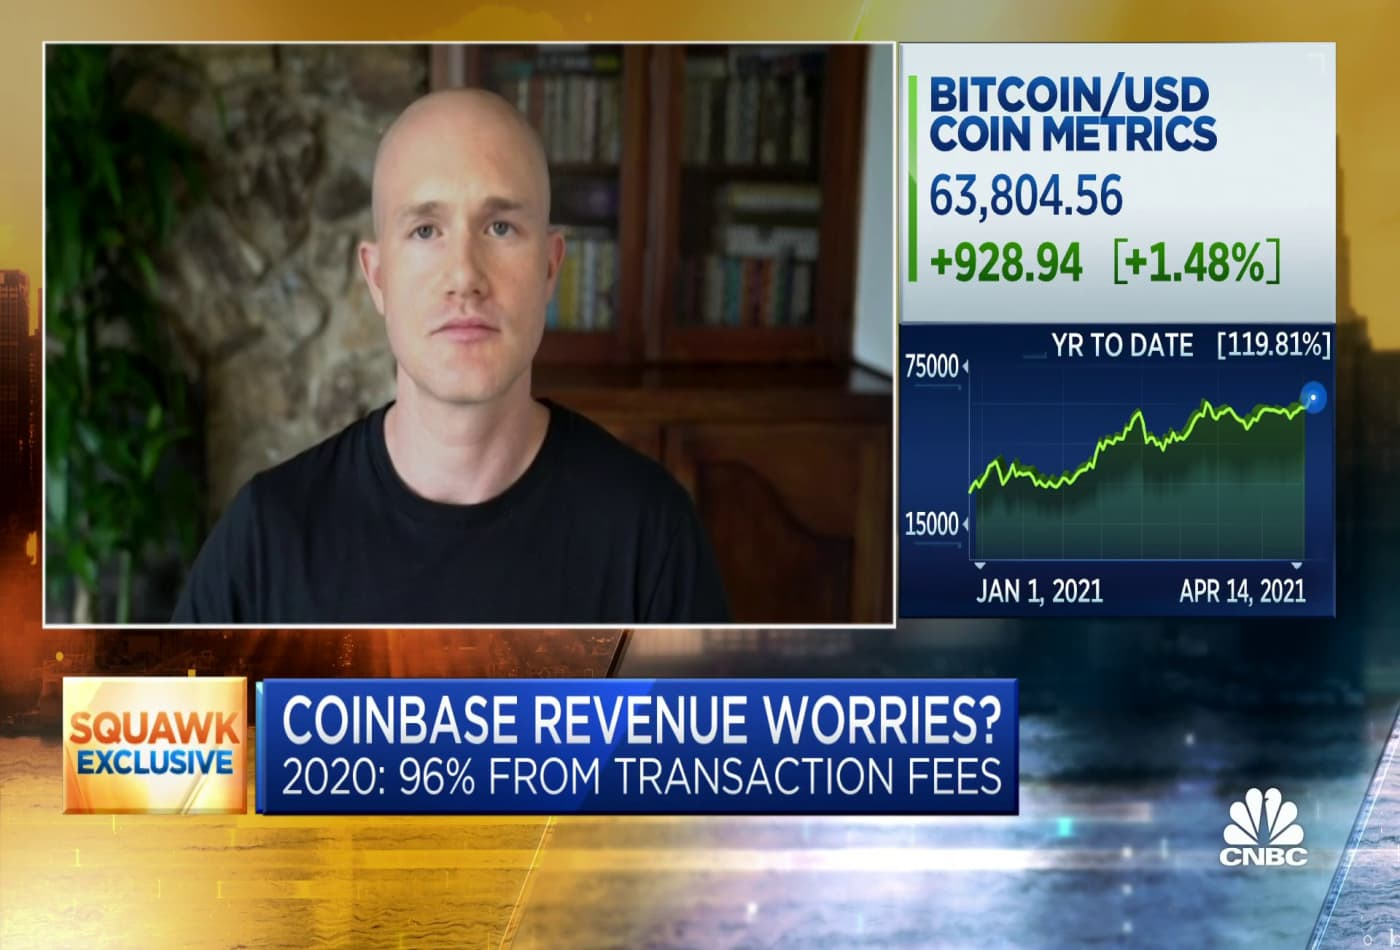 Coinbase CEO on how correlated the company's valuation is to the price of bitcoin